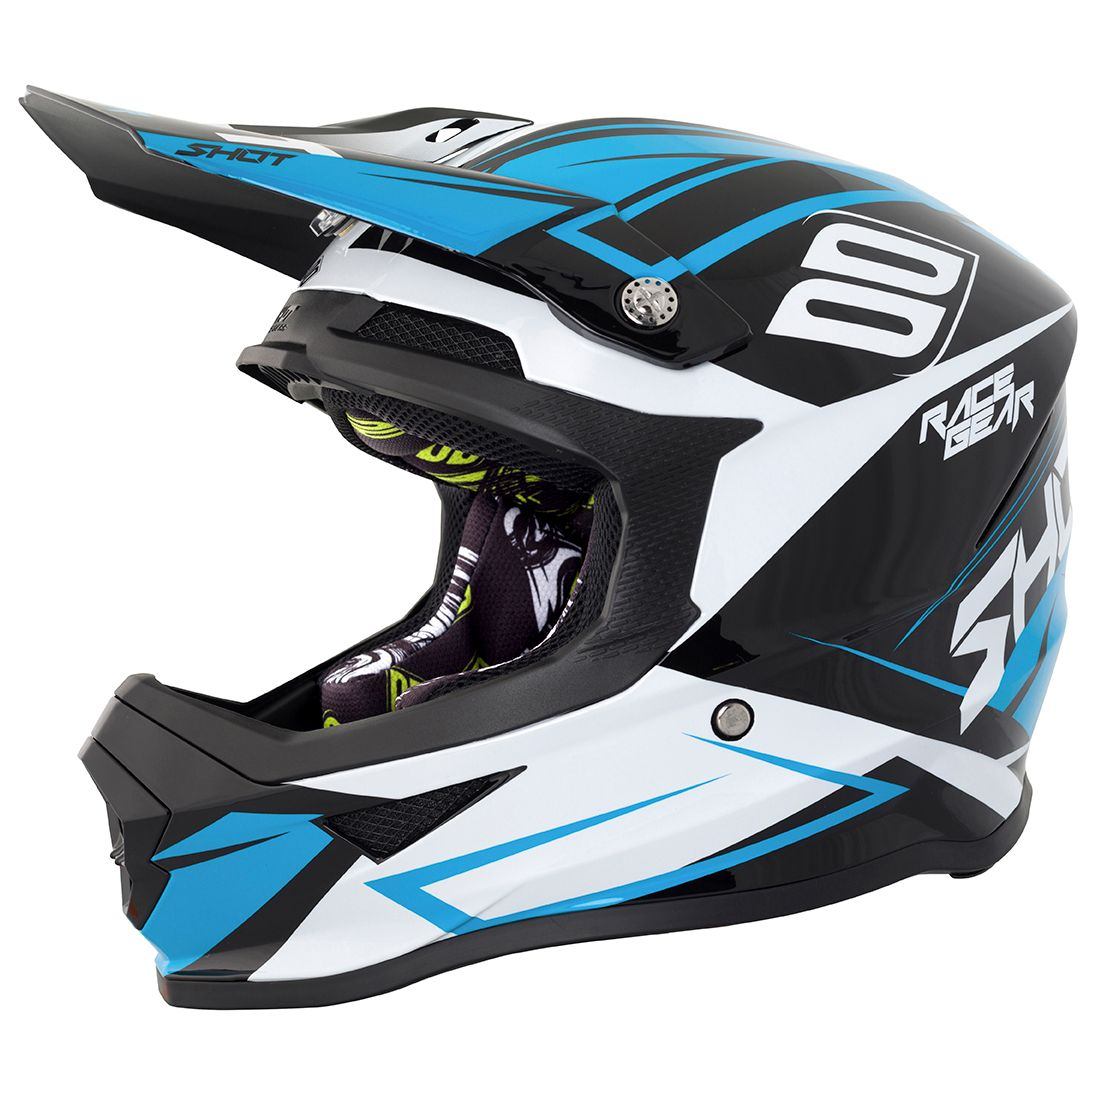 Casque cross Shot destockage FURIOUS ALERT BLACK BLUE GLOSS 2018